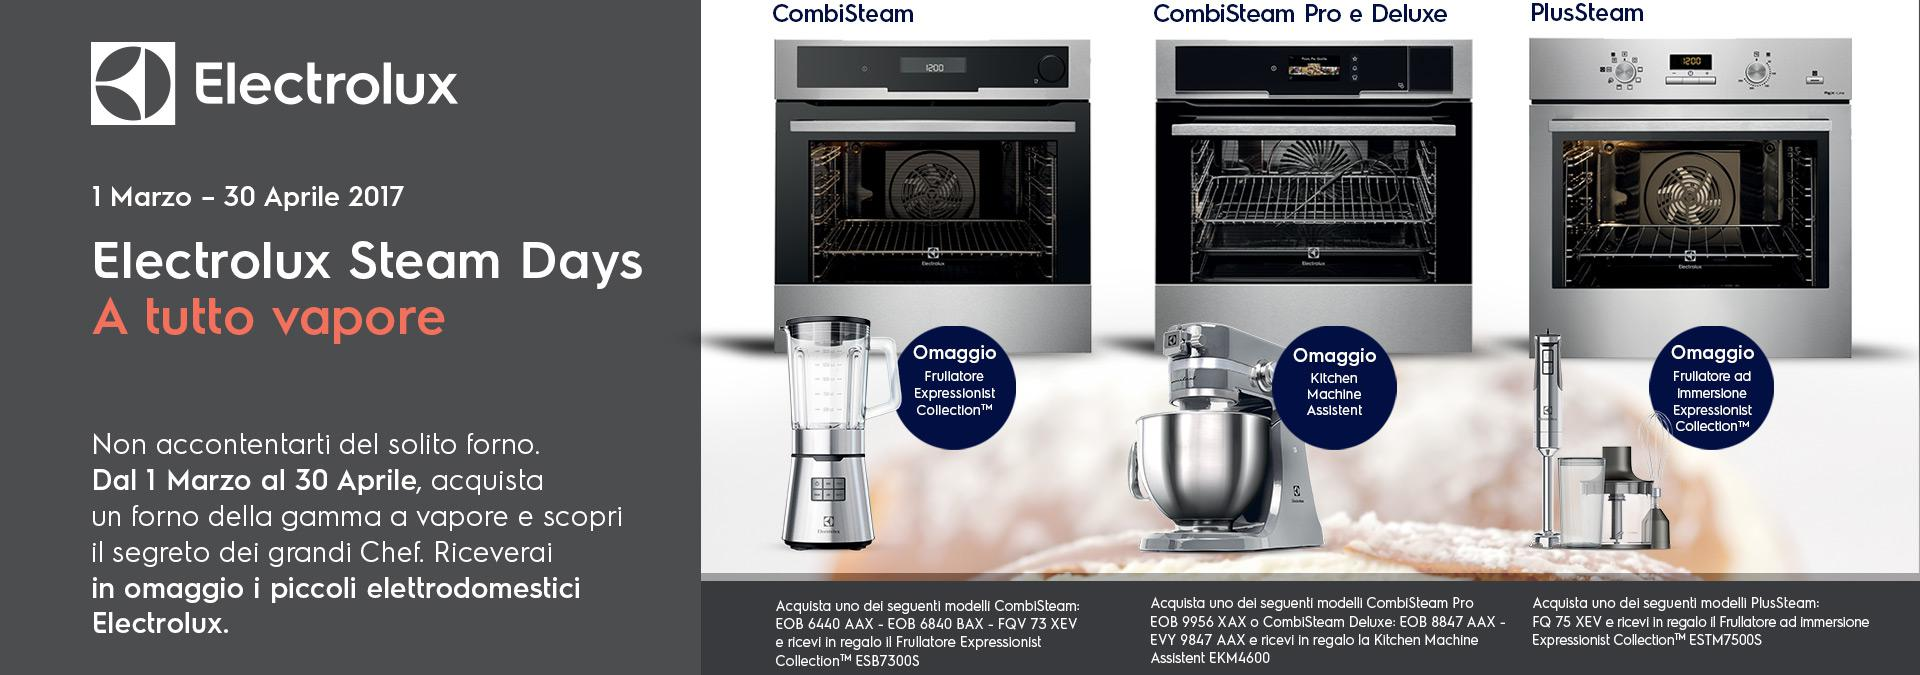 Electrolux steam days a tutto vapore news events astra - Forno a vapore electrolux ...